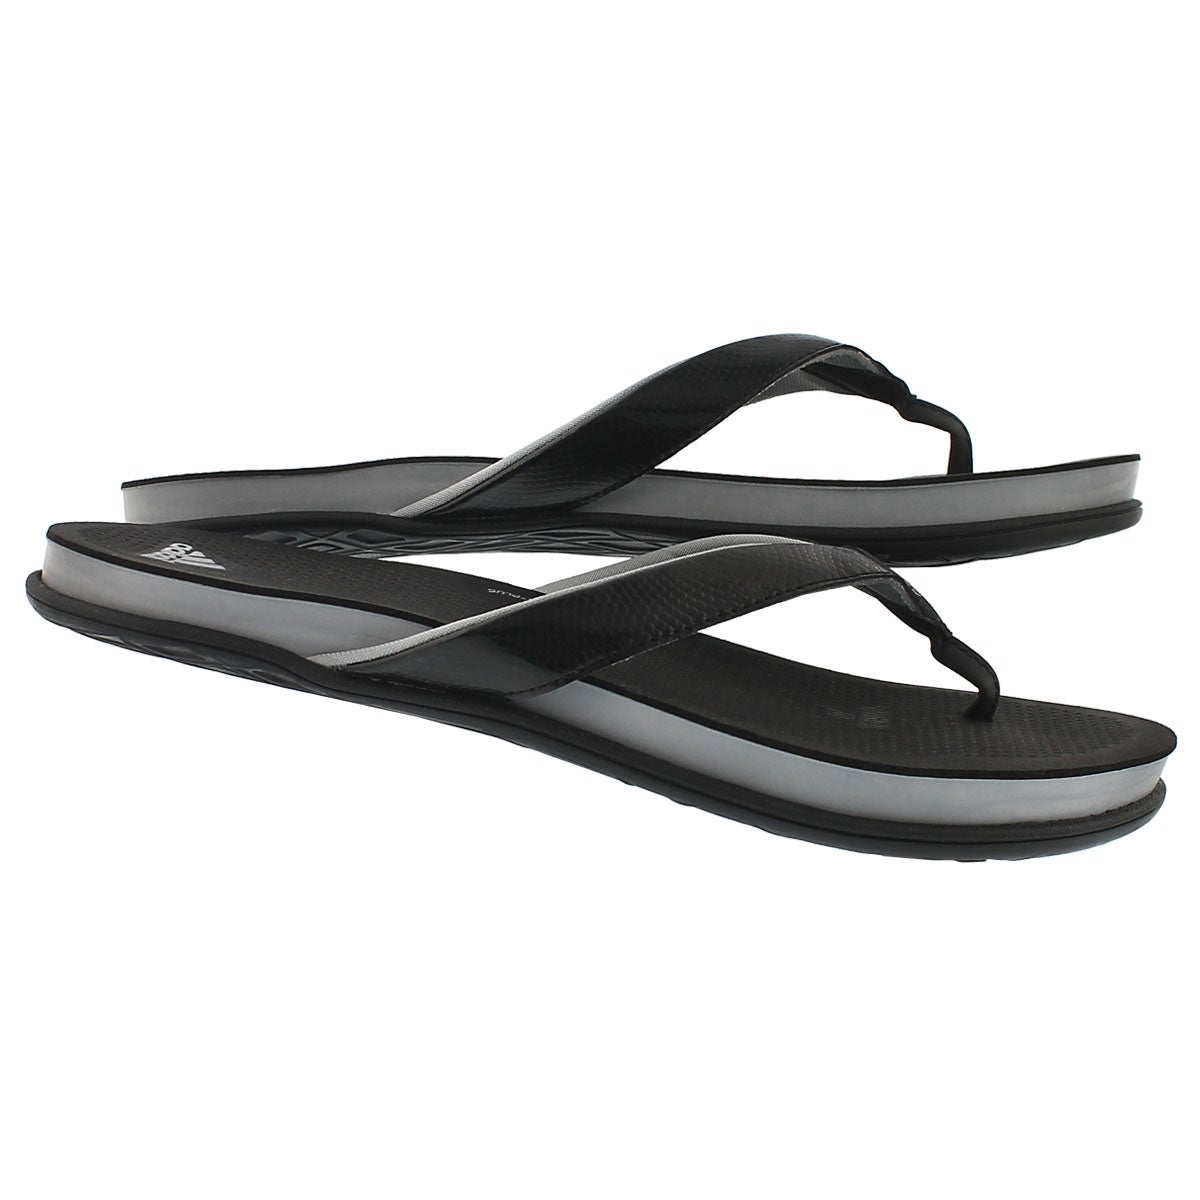 Lds Cloudfoam Ultra Y black thong sandal